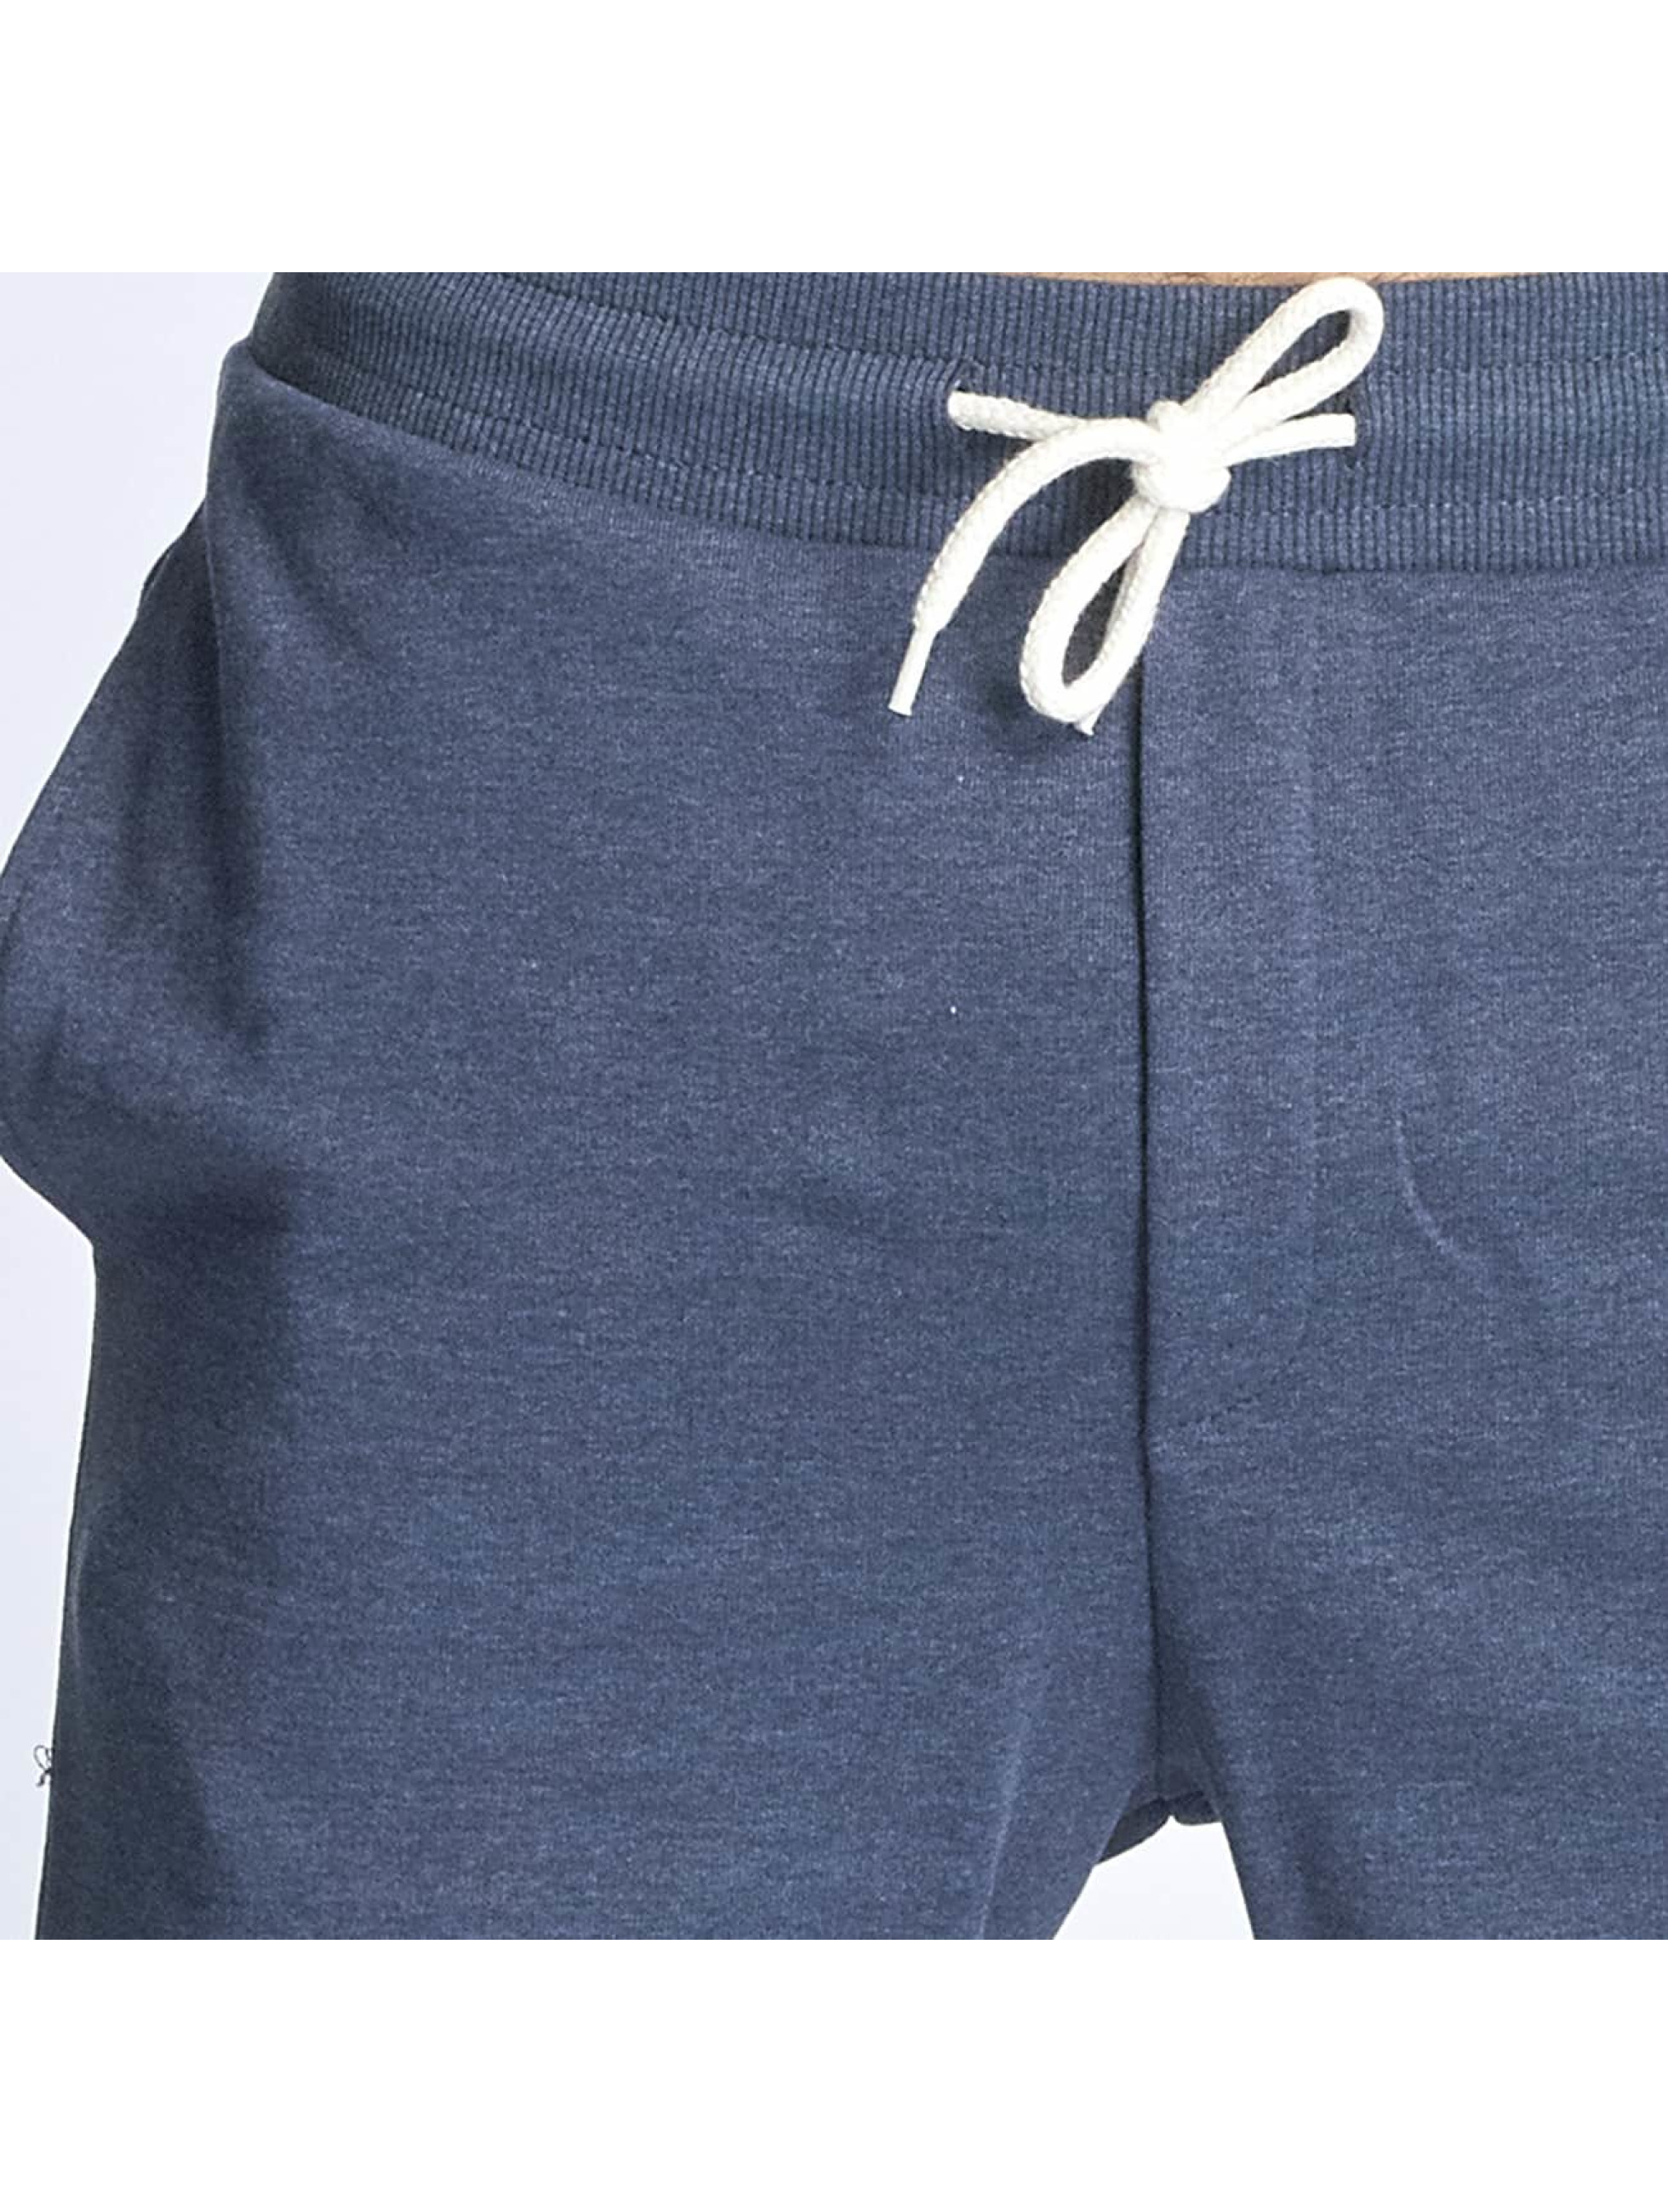 Jack & Jones Short jorNewhouston blue